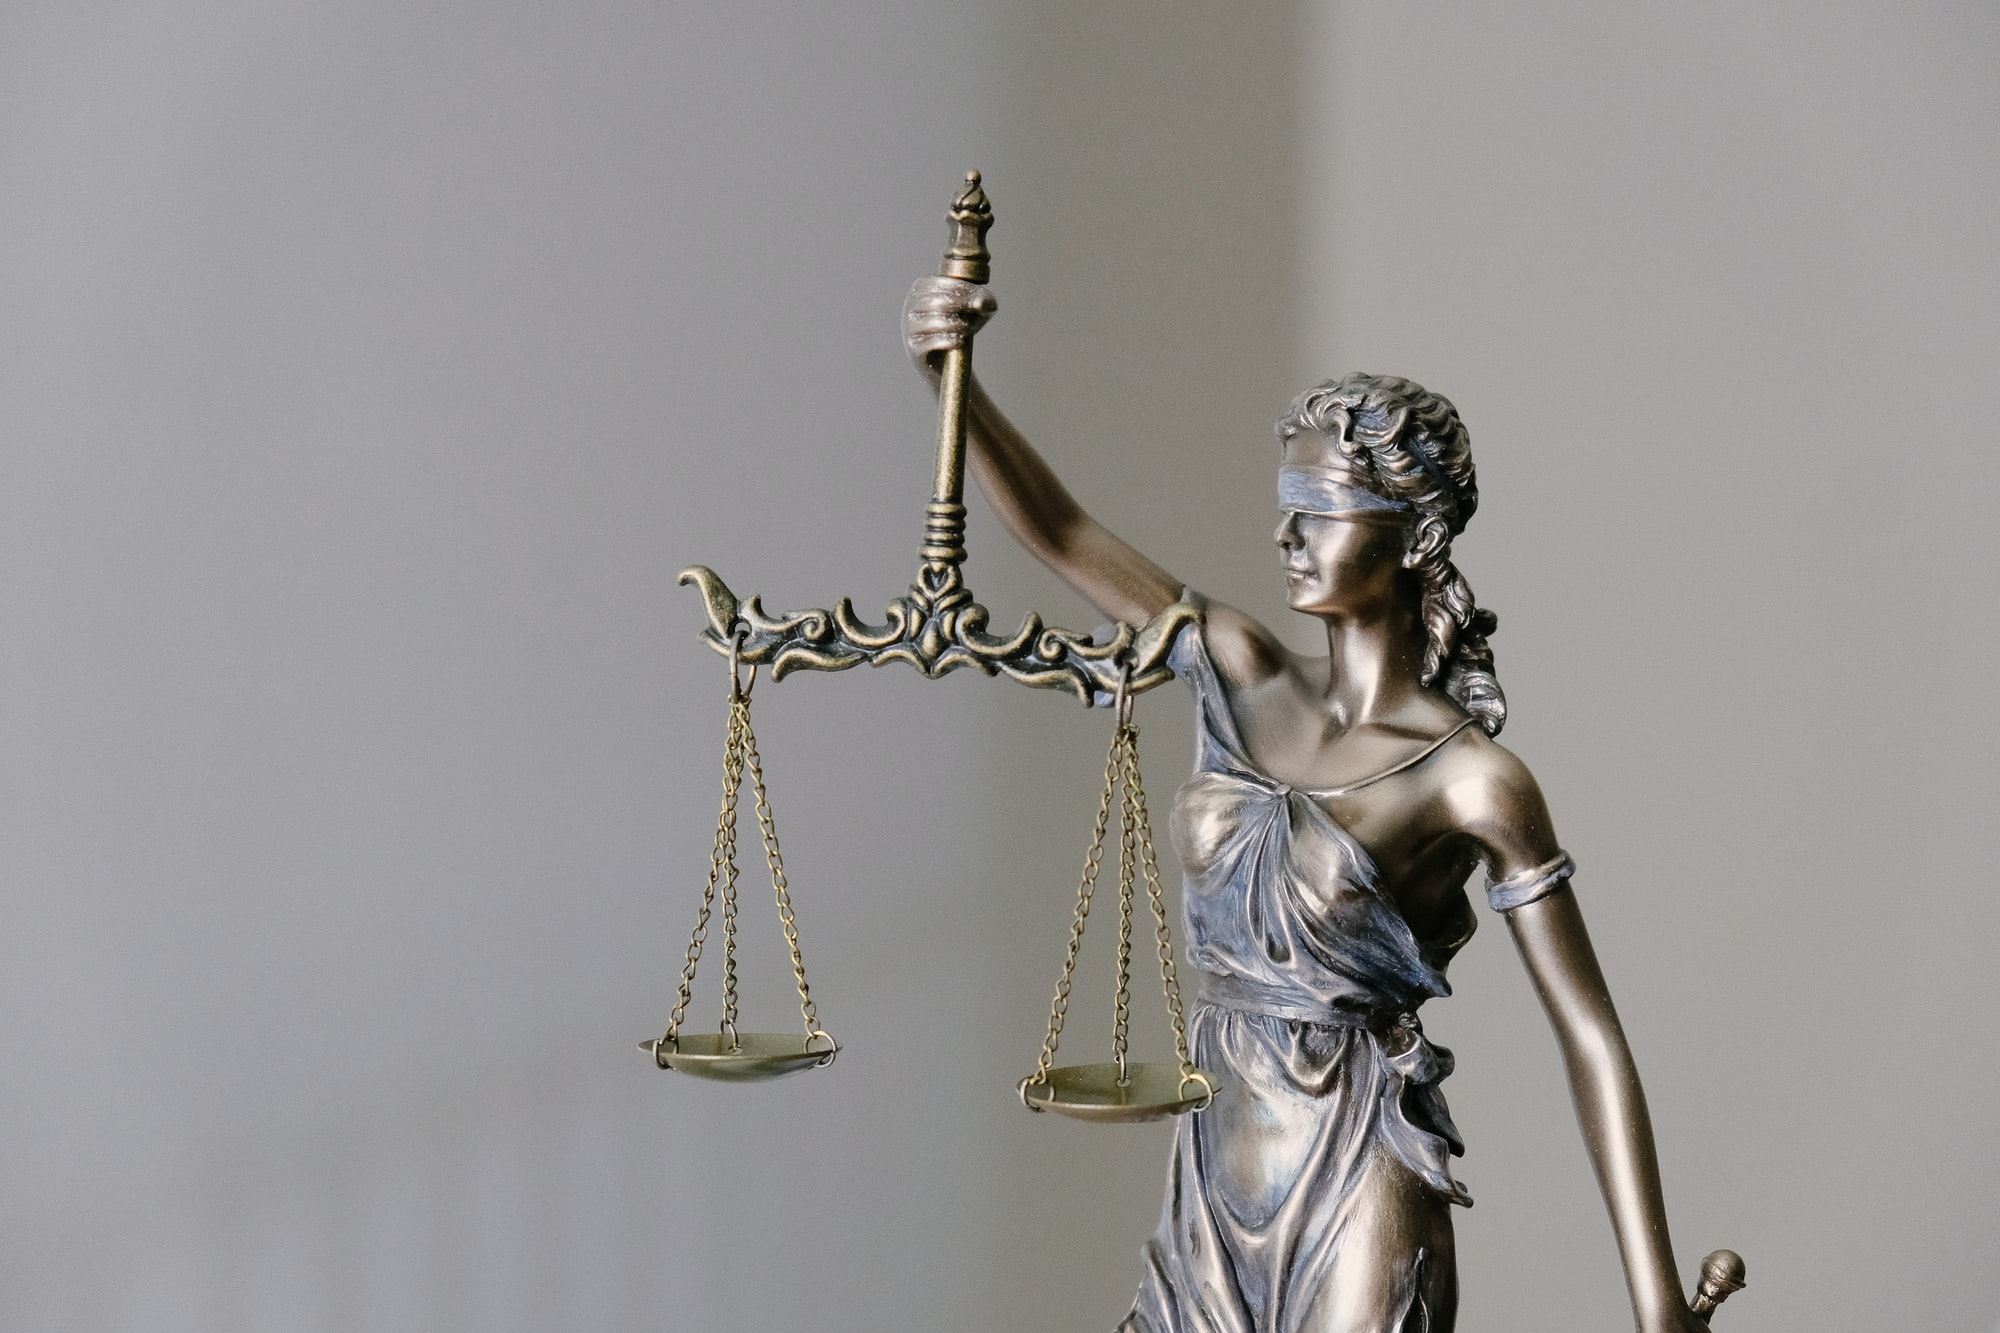 UPDATE: Lady Justice says Meow